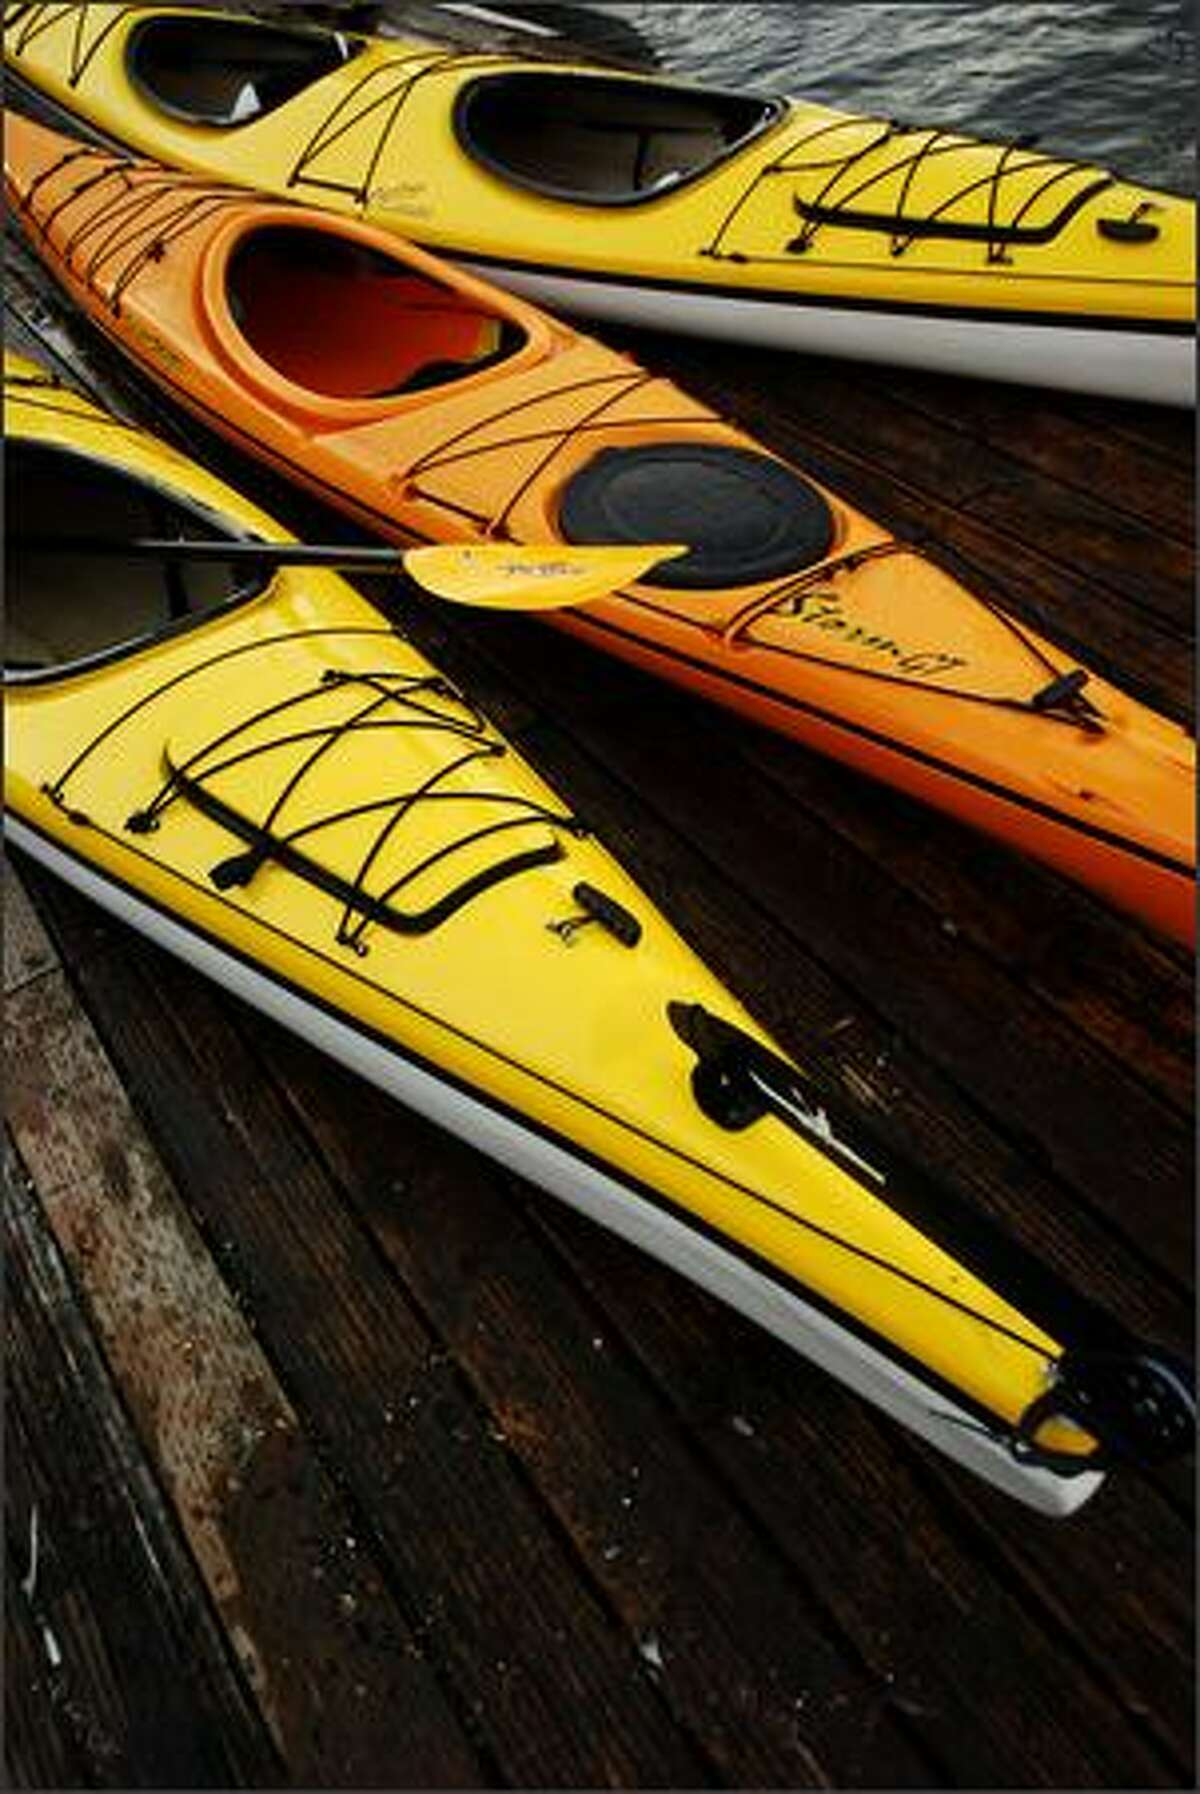 Kayaks from the Portland Kayak Company sit on a dock in Portland on July 9, 2007.